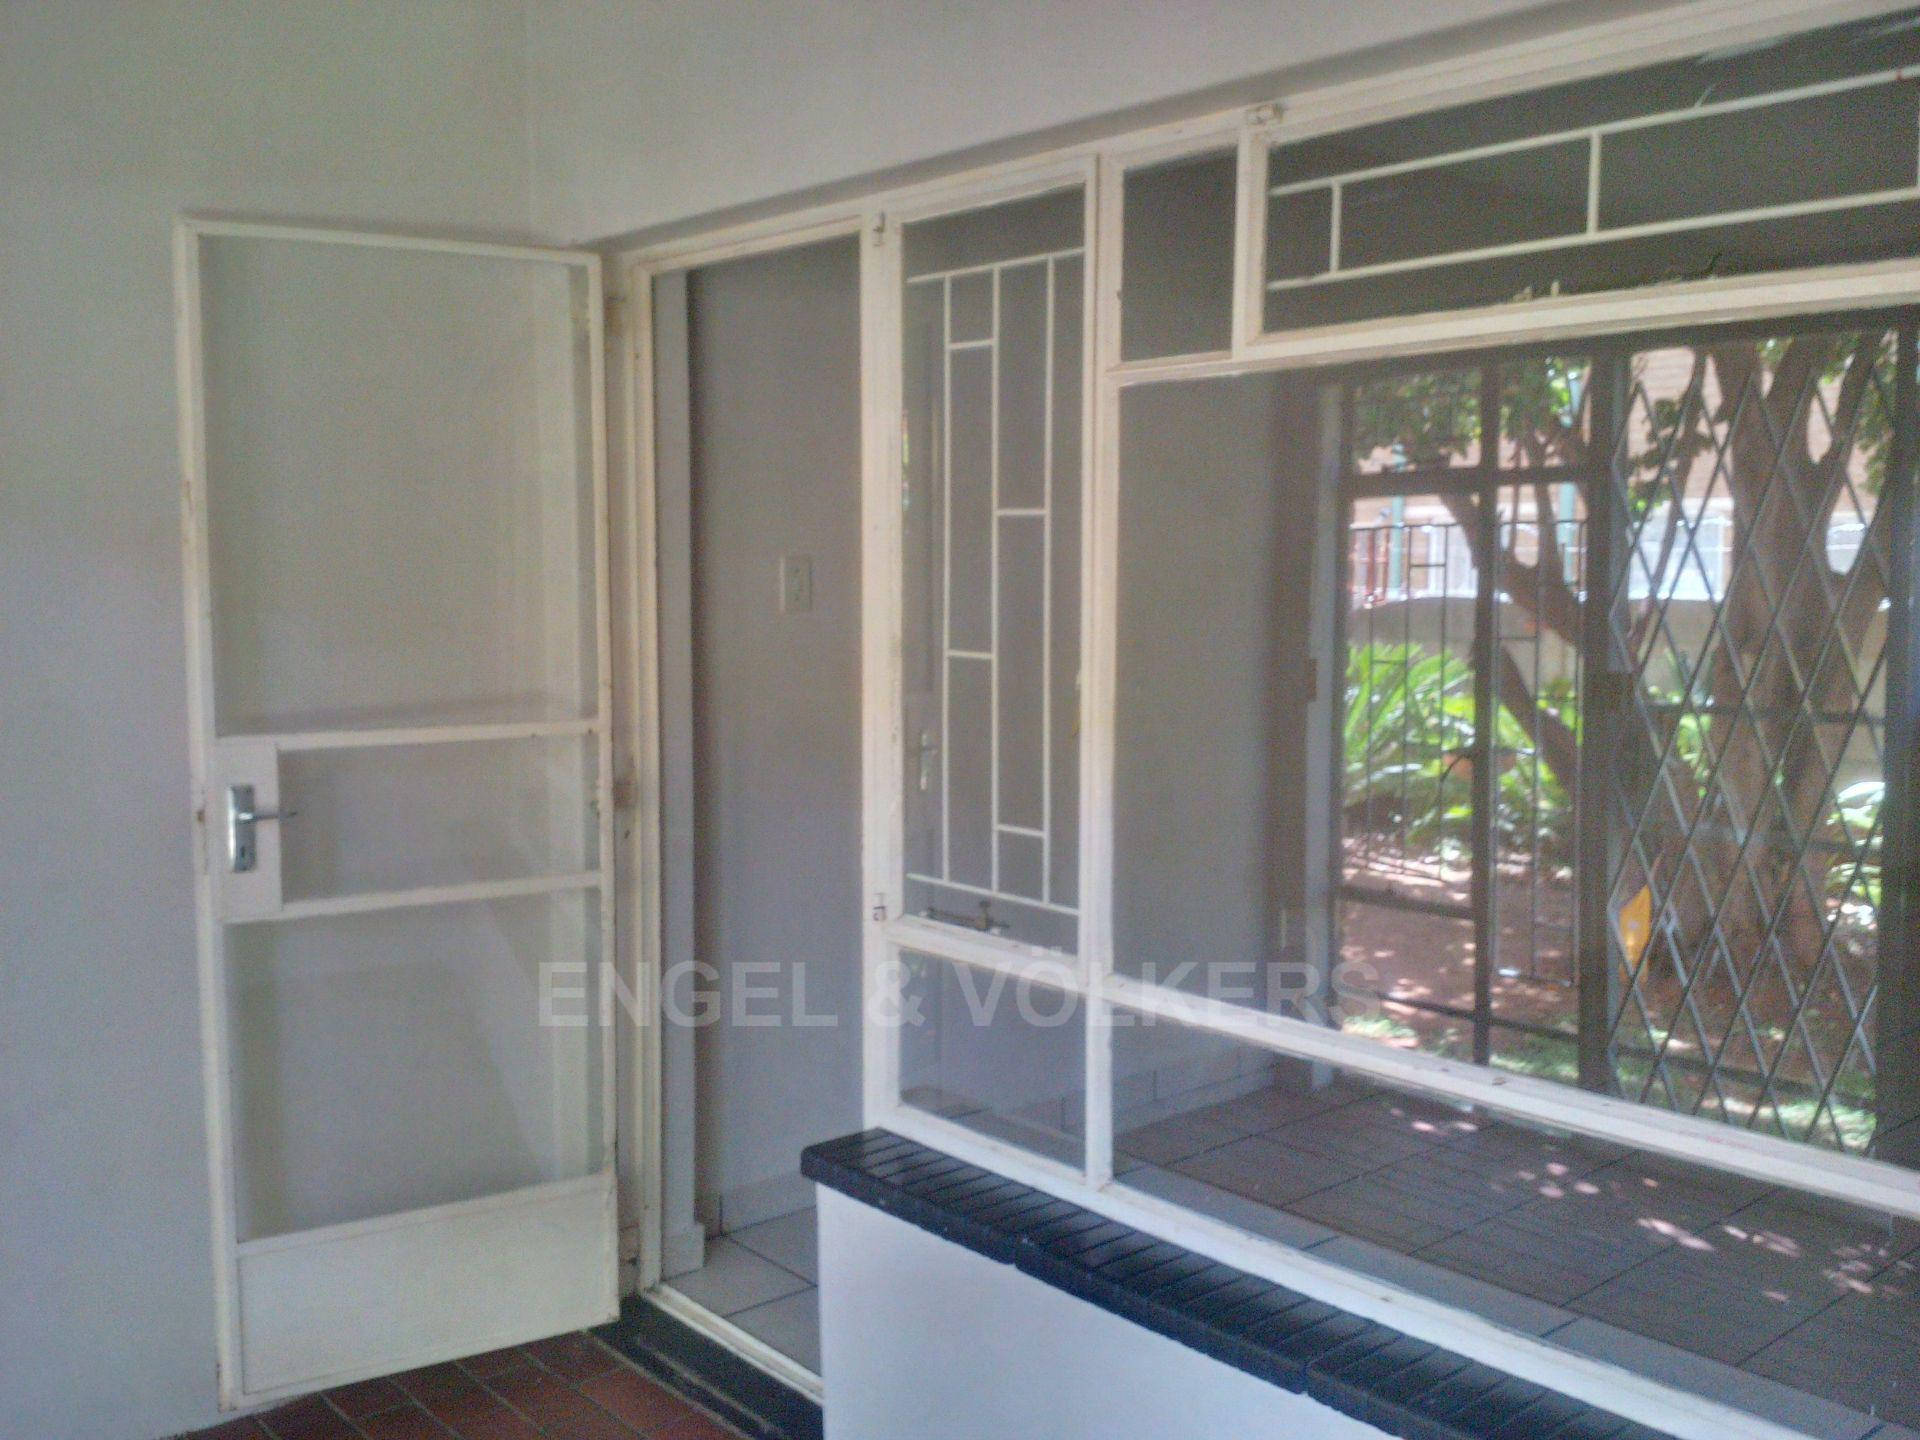 Potchefstroom Central property for sale. Ref No: 13549283. Picture no 10